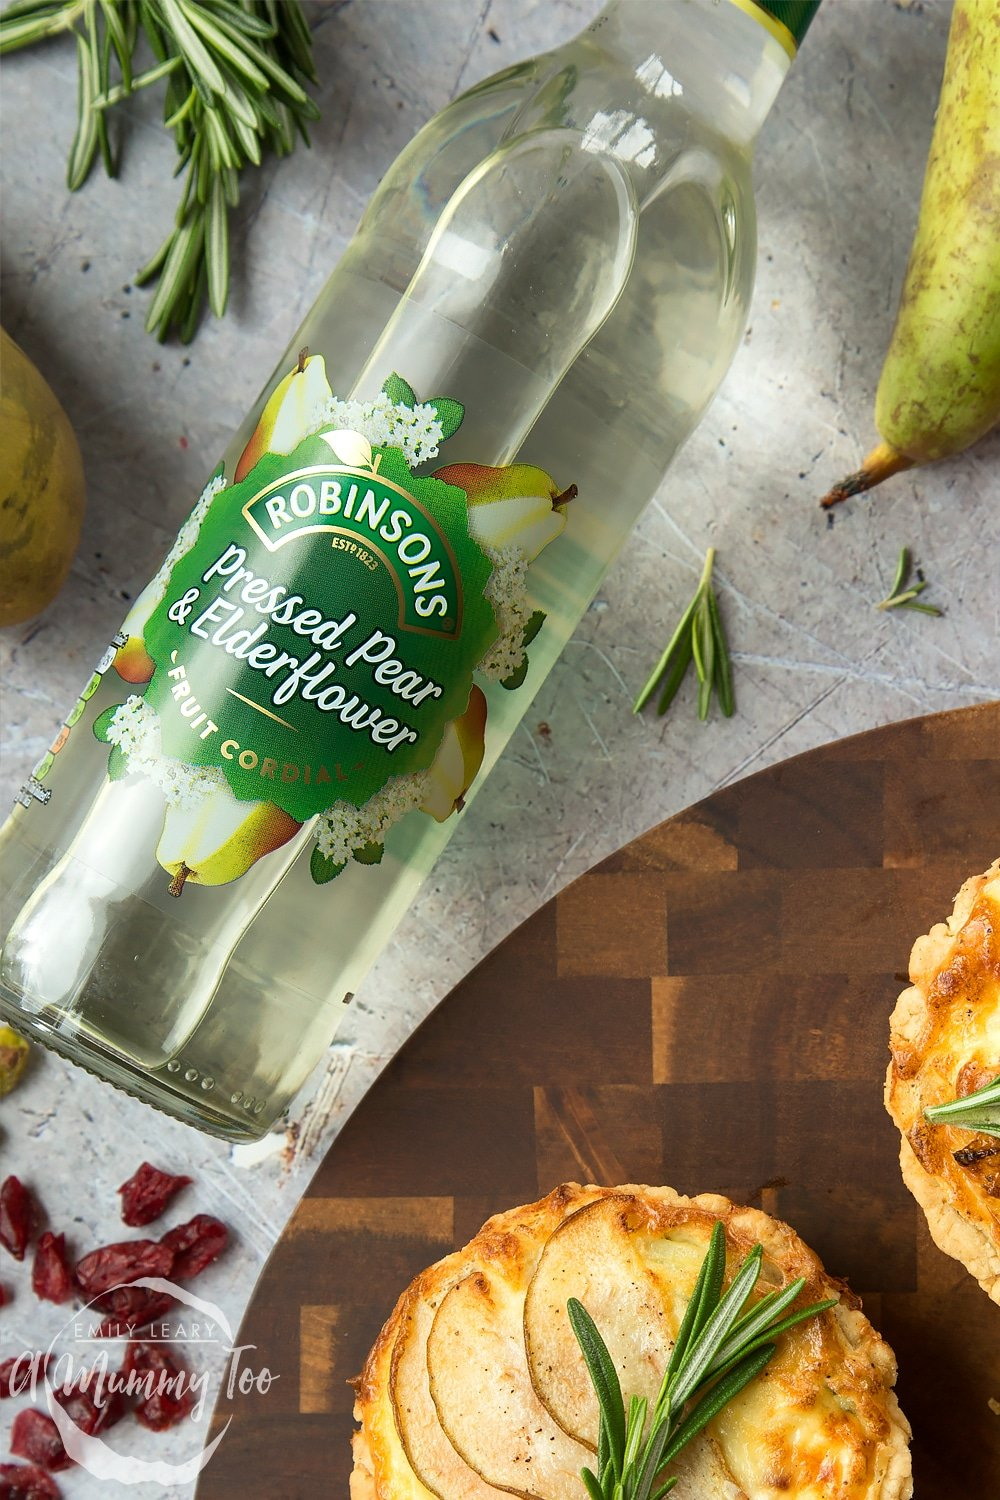 Robinsons Pressed Pear and Elderflower fruit cordial - the perfect accompaniment to these rosemary goat's cheese tarts